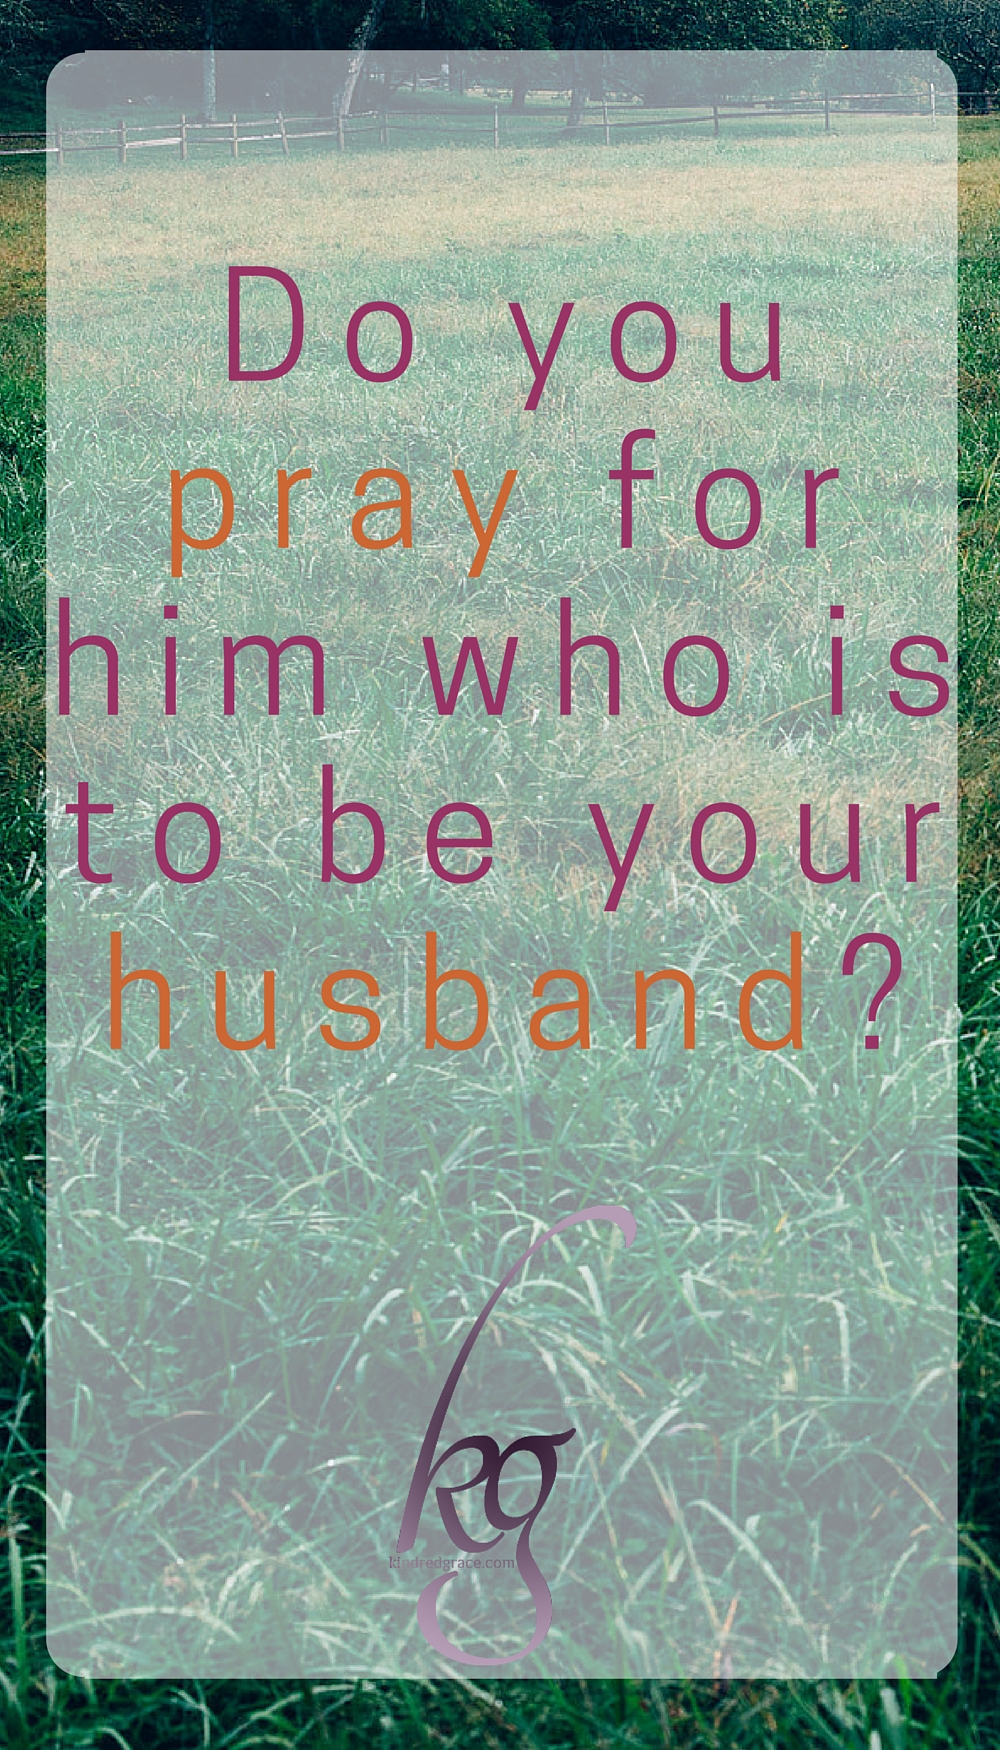 "He paused and – so only Susannah could hear him – whispered, ""Do you pray for him who is to be your husband?"" via @KindredGrace"